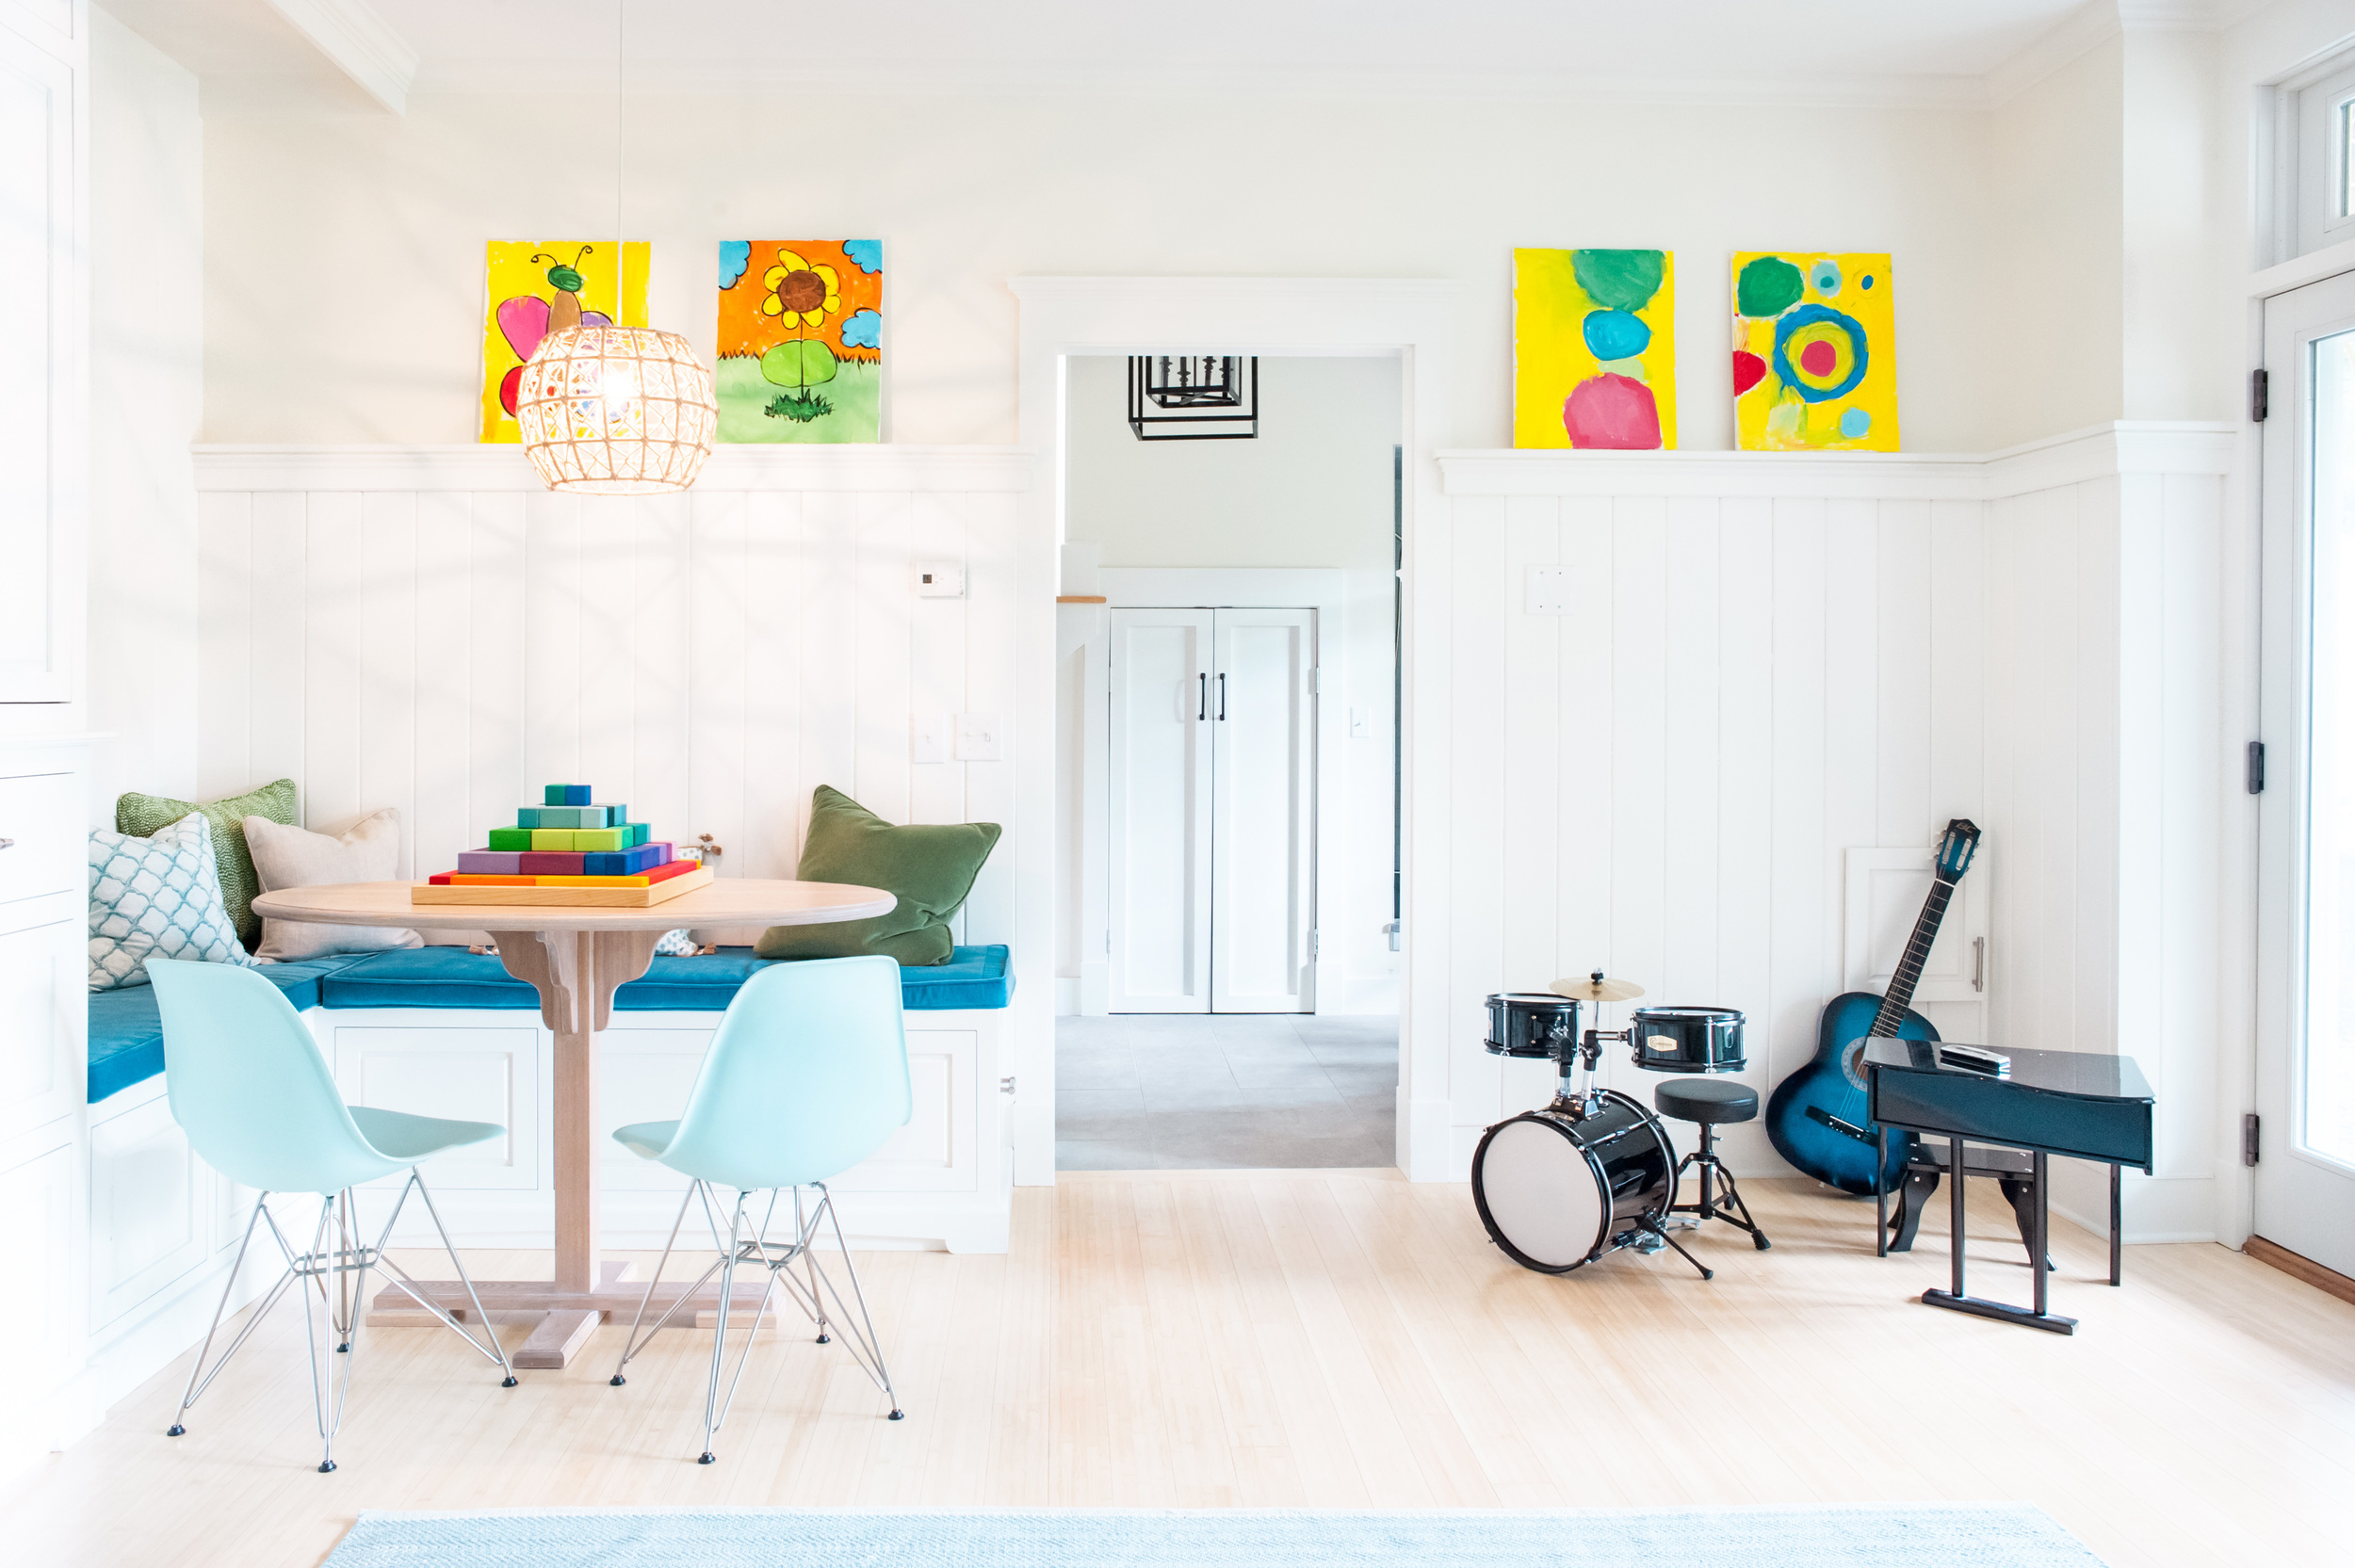 room_with_table_and_instruments